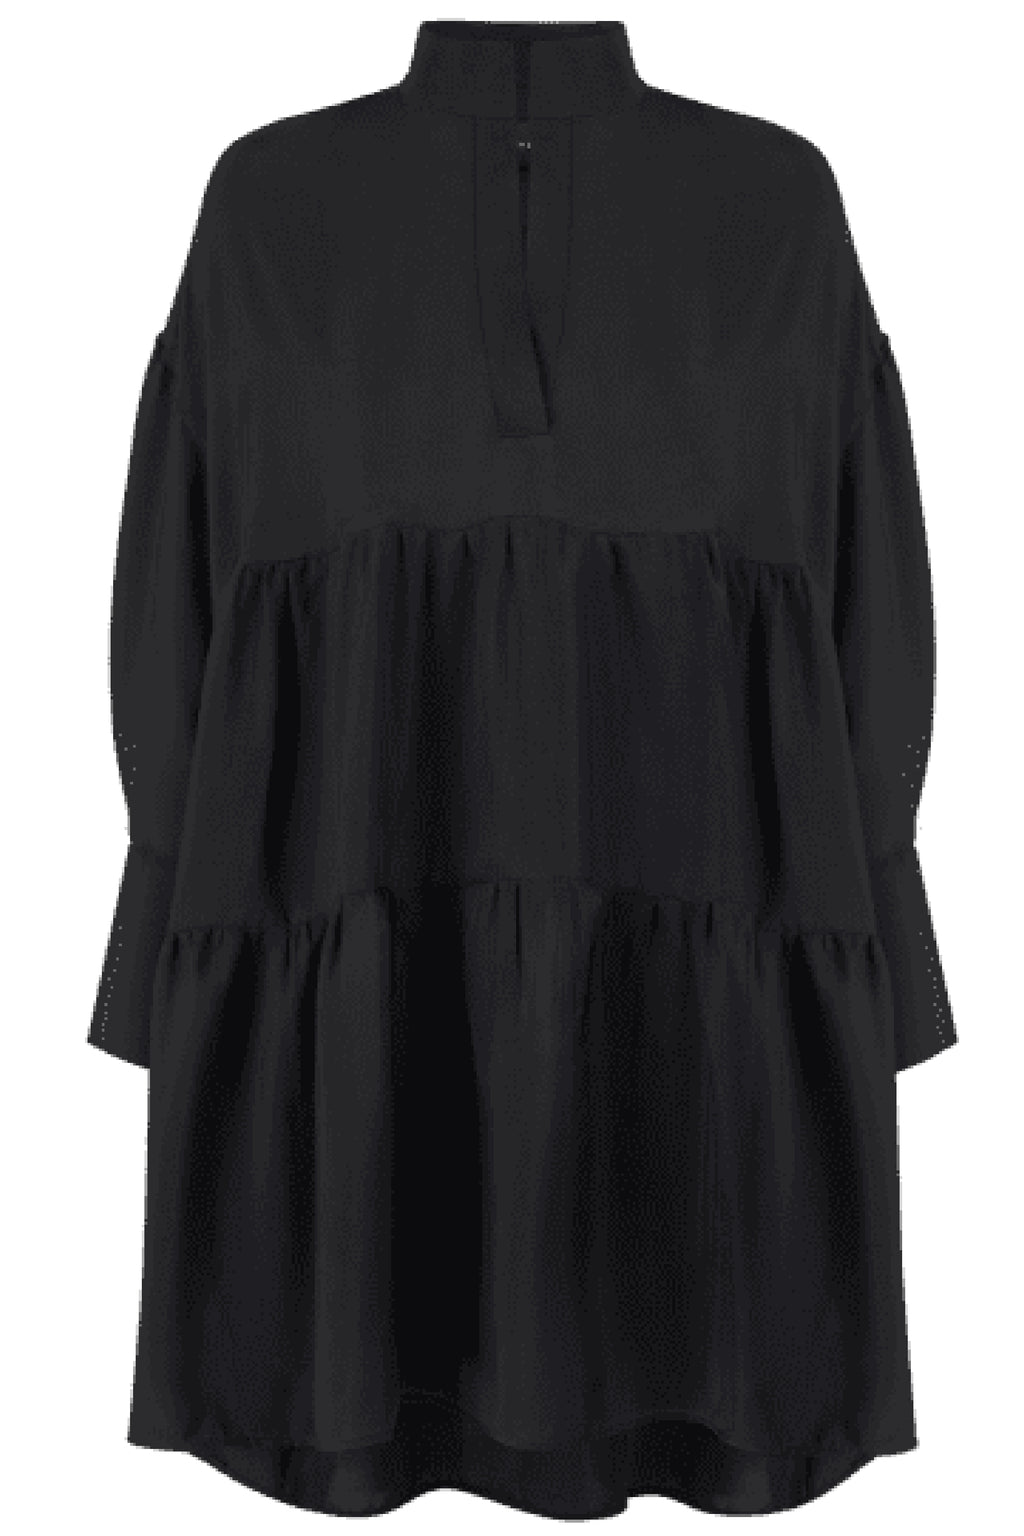 LILA BLACK VISCOSE DRESS in BLACK